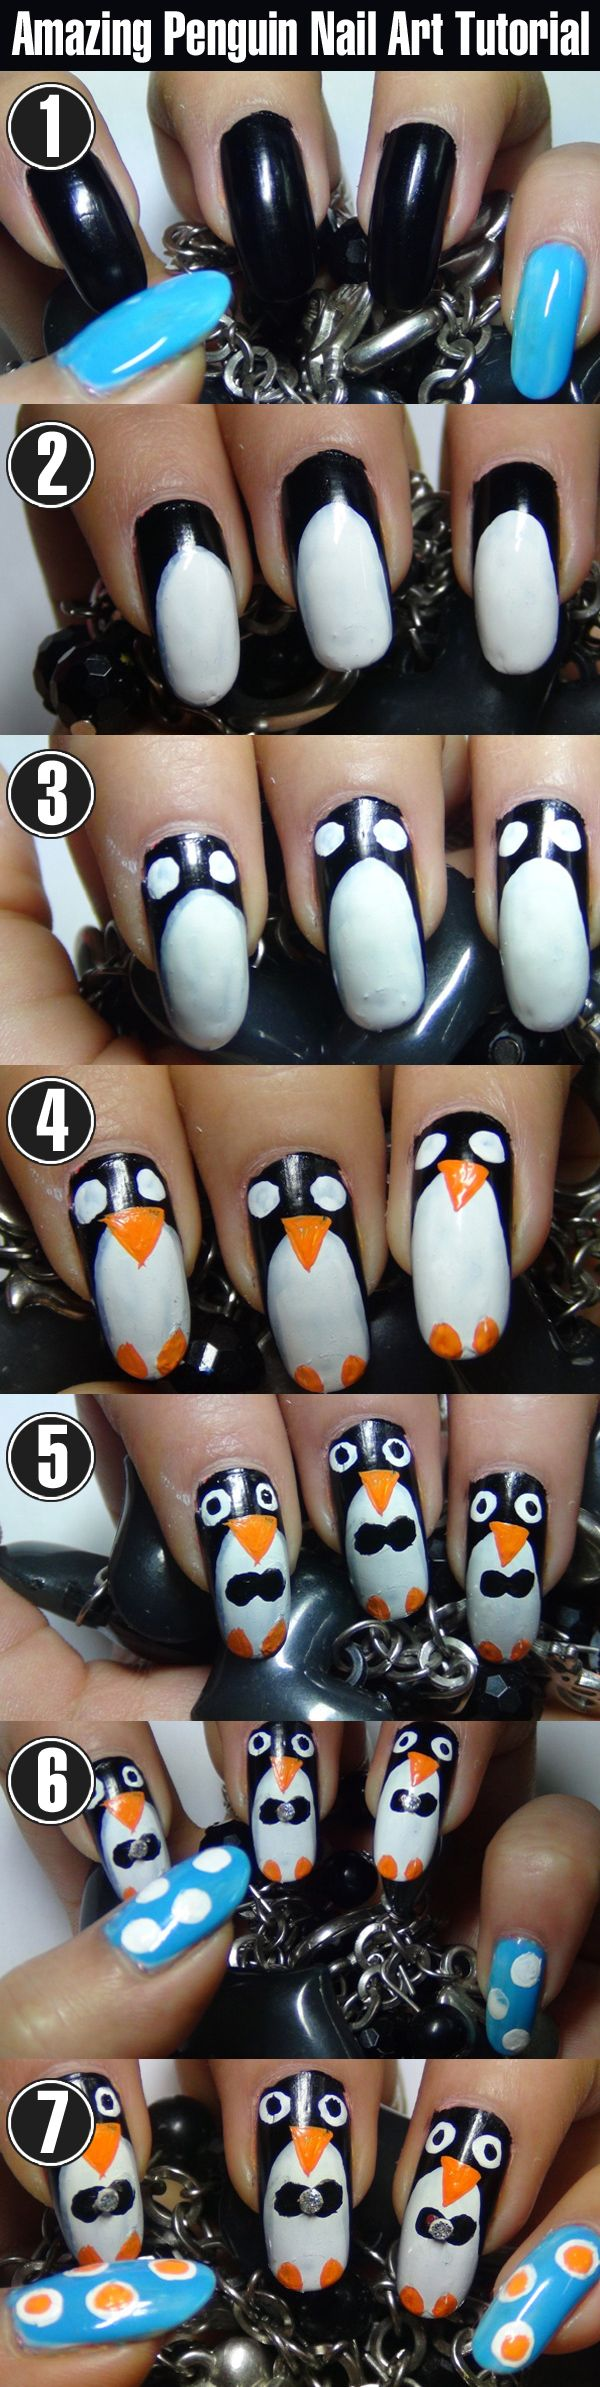 Amazing Penguin Nail Art Tutorial With Detailed Steps & Pictures